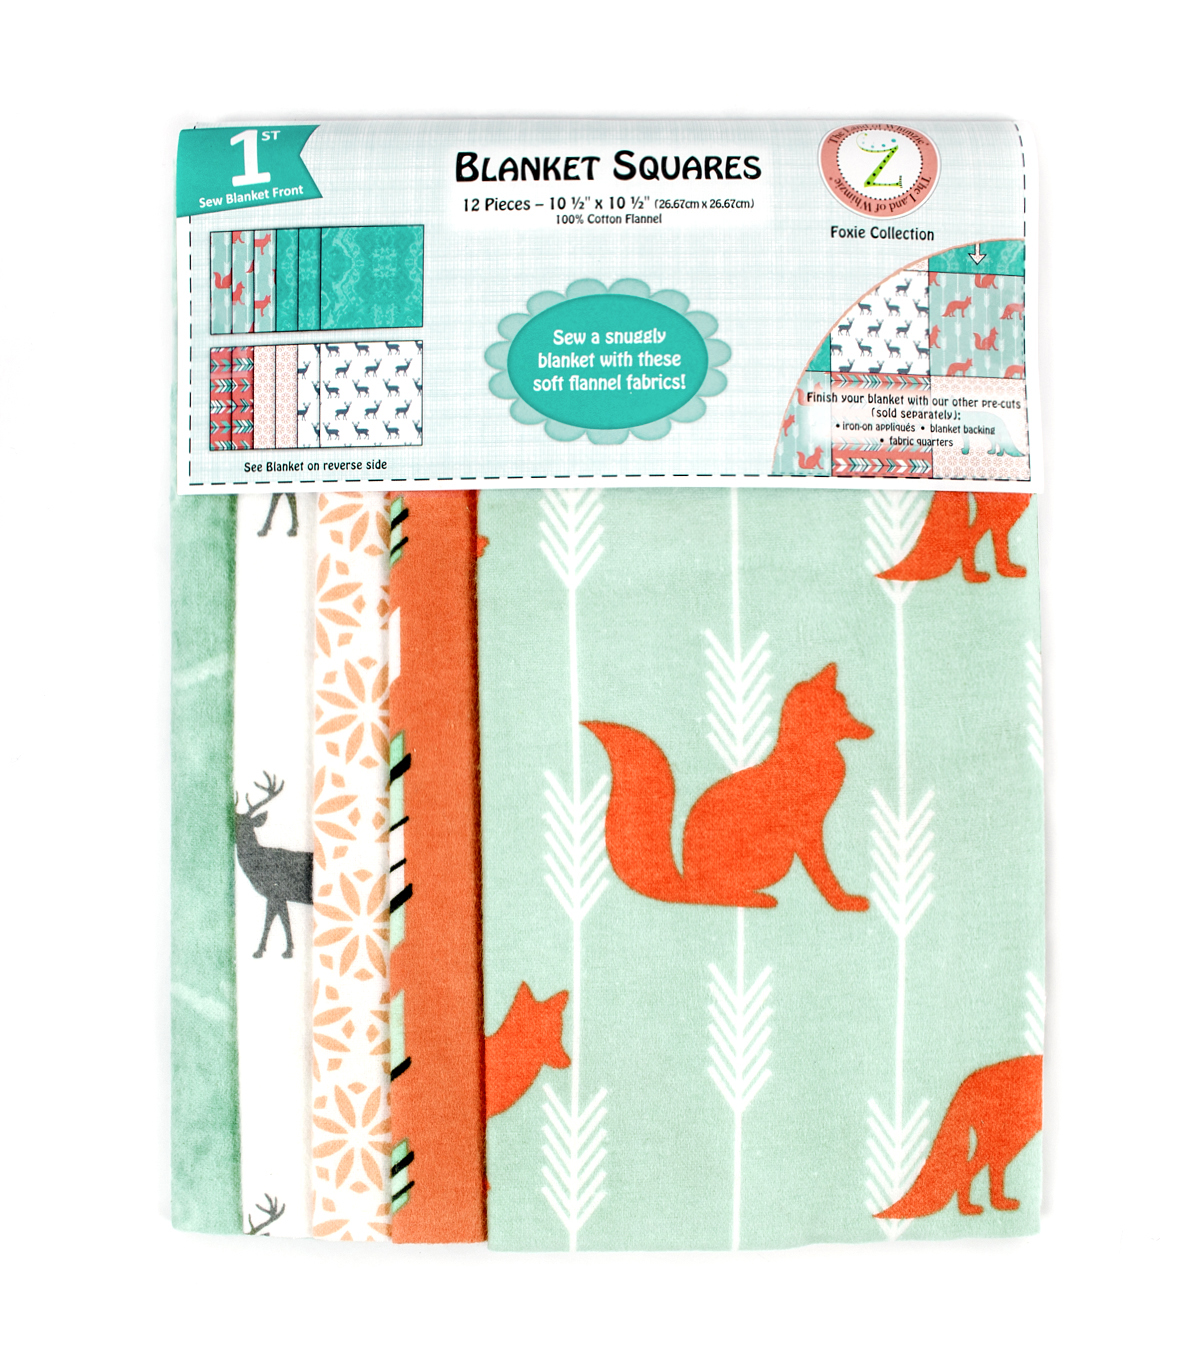 Land of Whimzie Foxie Flannel Blanket Squares - 12 pieces 10.5\u0022 x 10.5\u0022